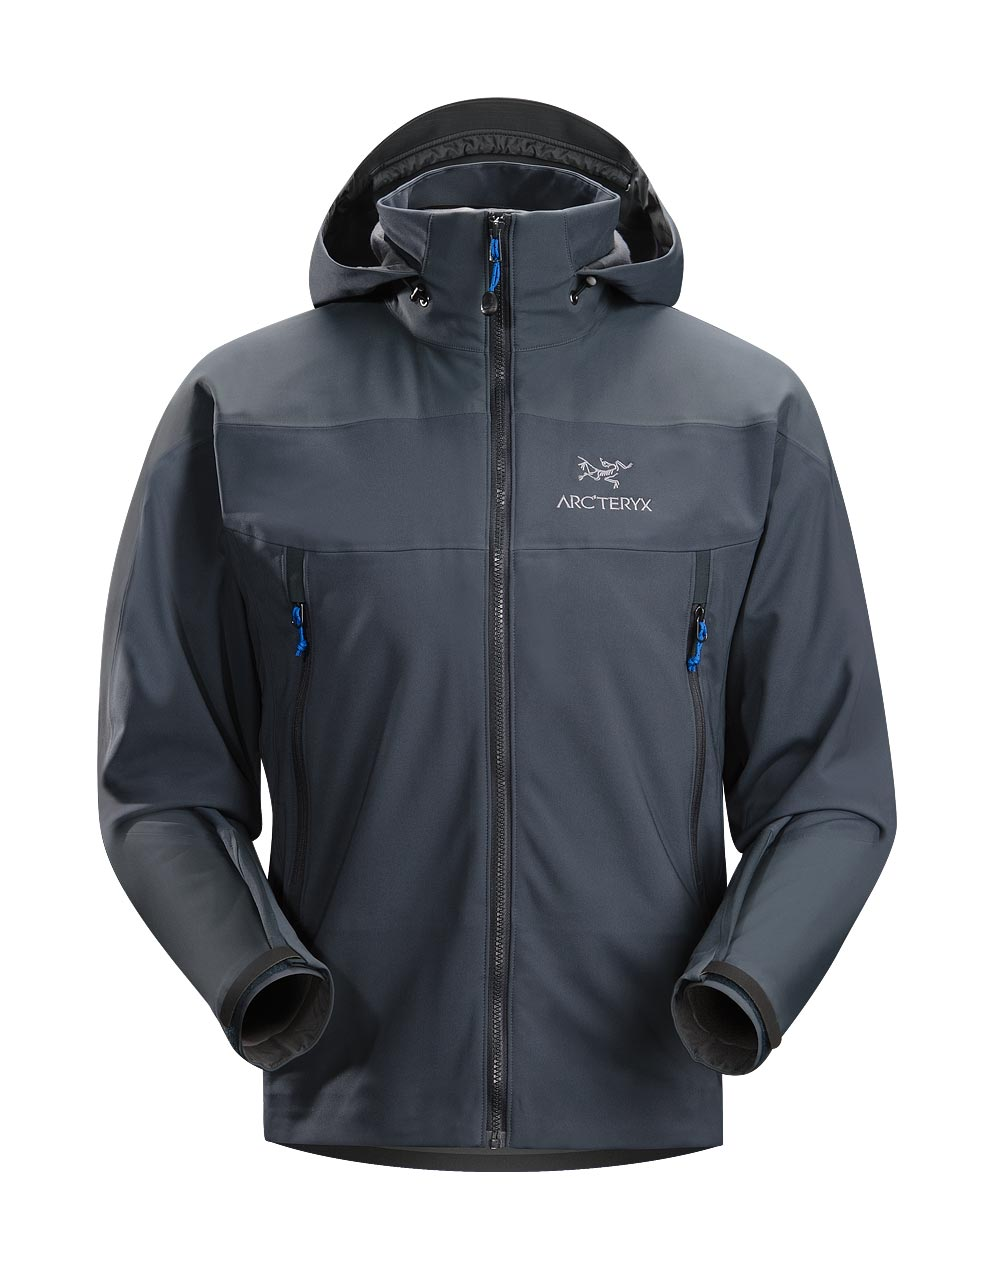 Arcteryx Night shade Venta SV Jacket